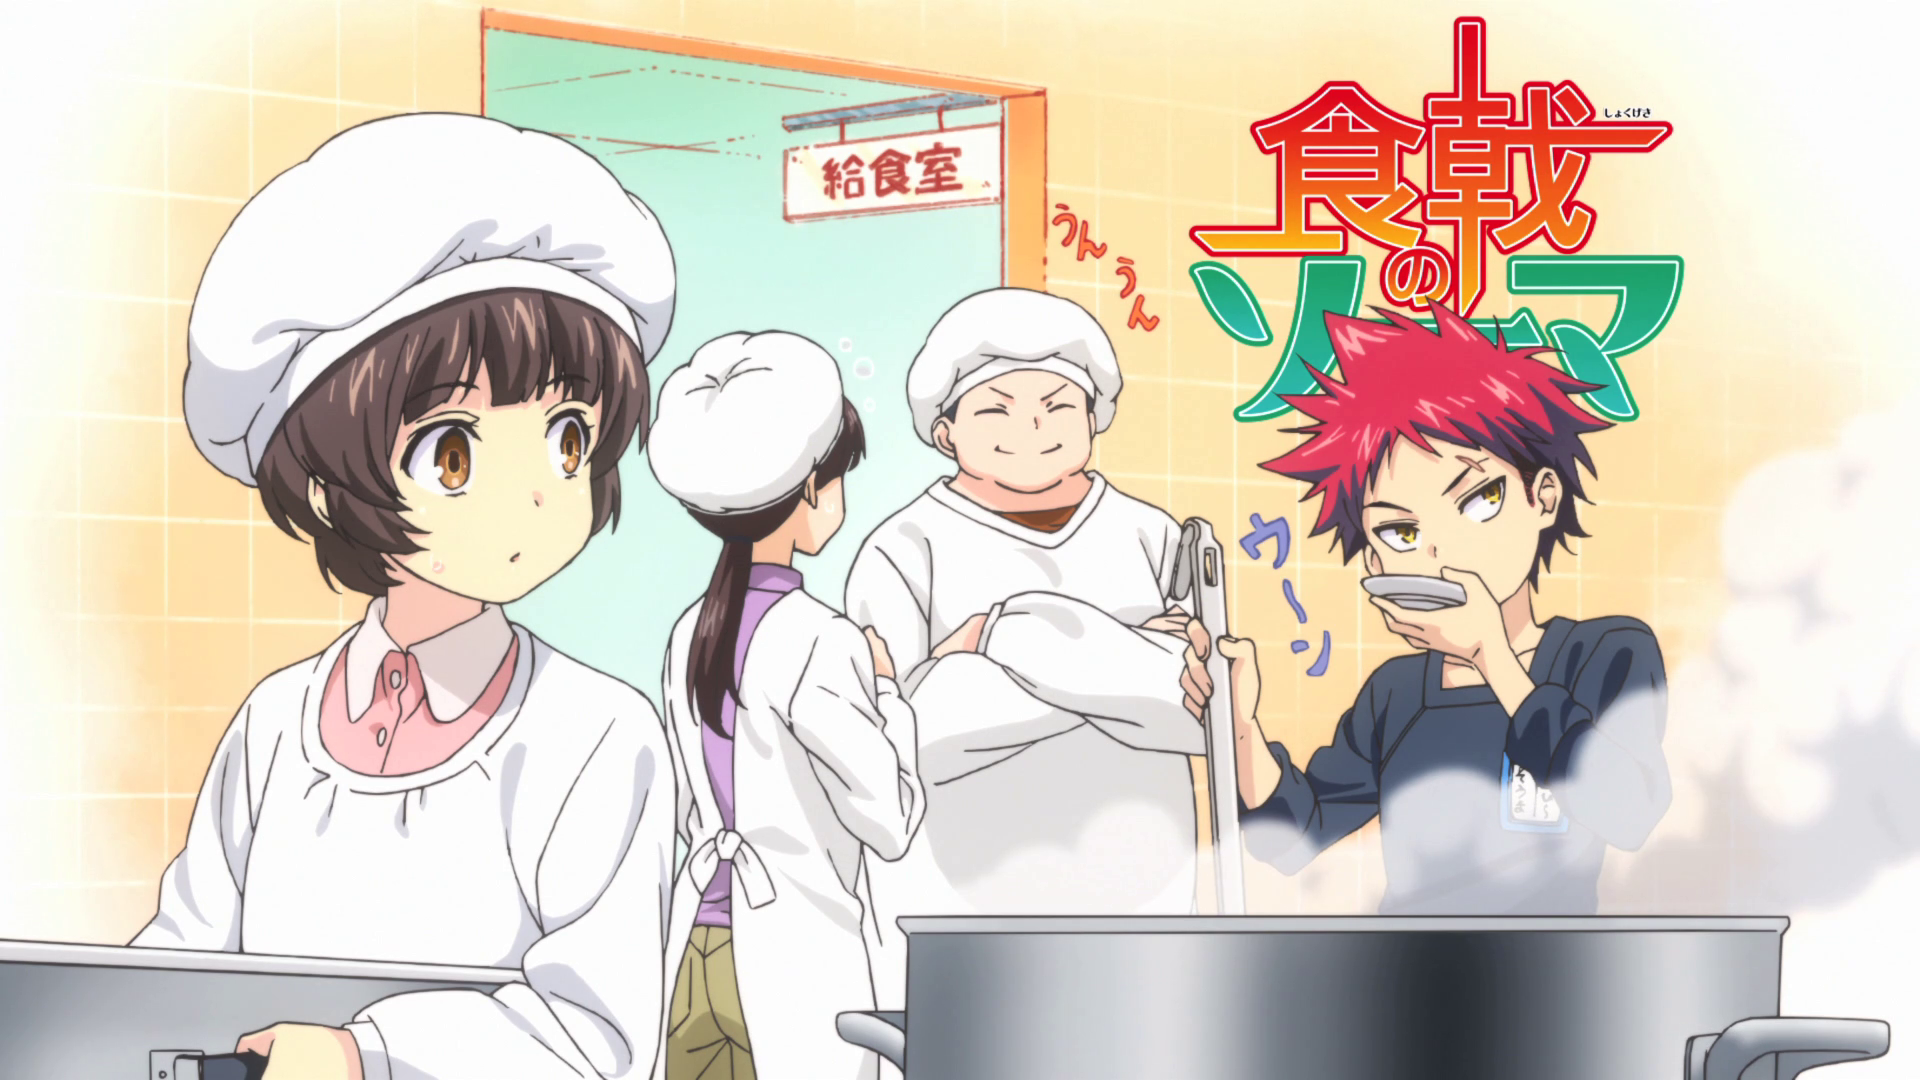 Young sōma cooking anime png